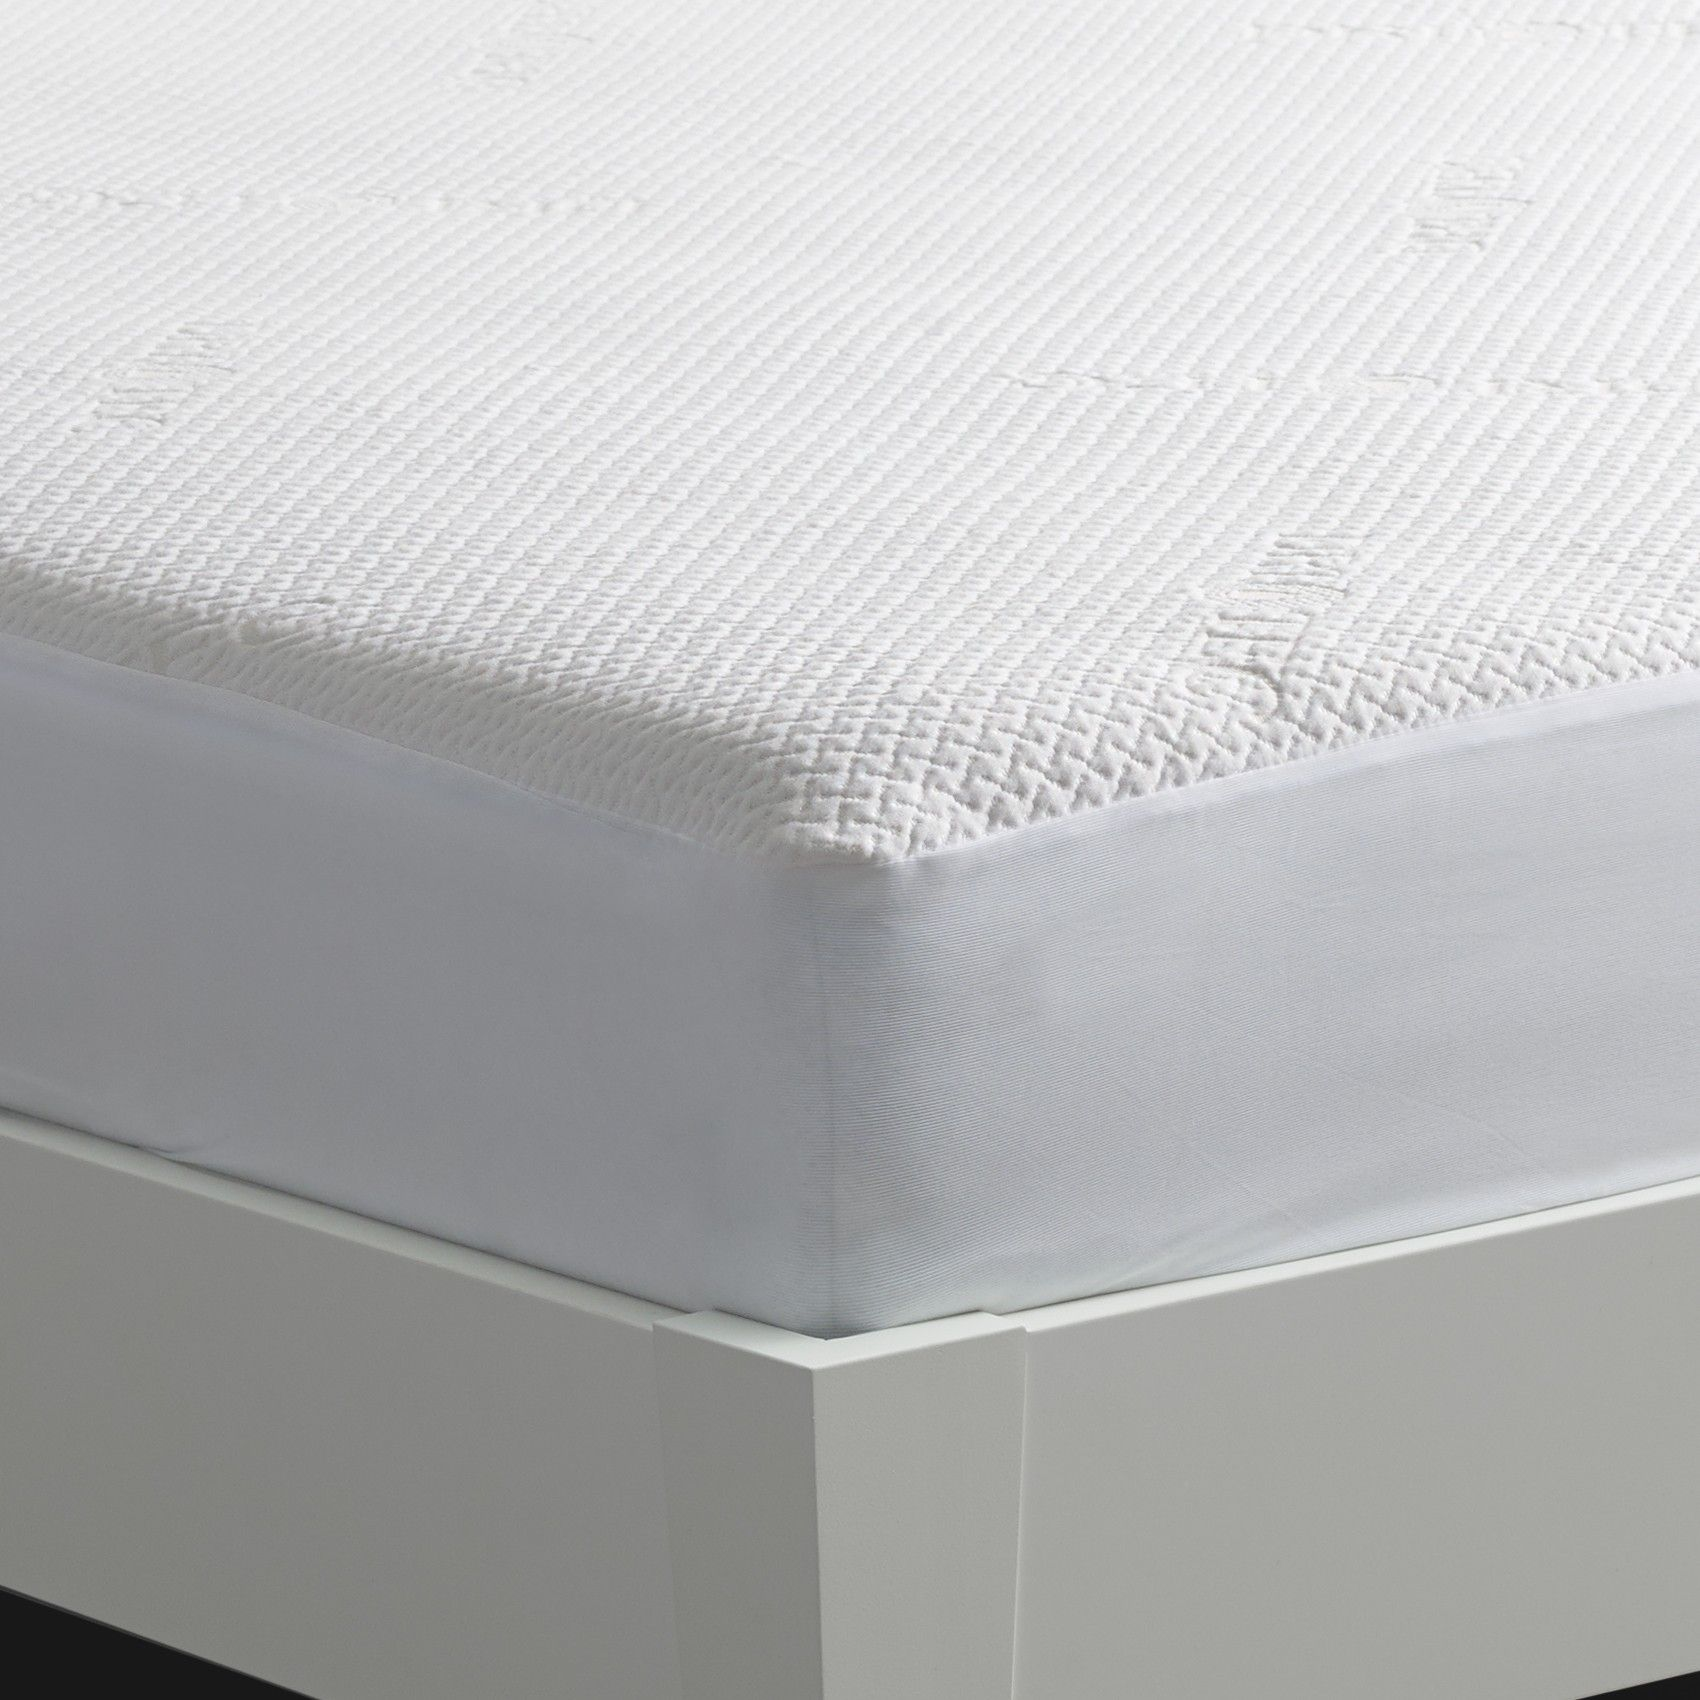 Pin on The Pillow Effect by BedGear